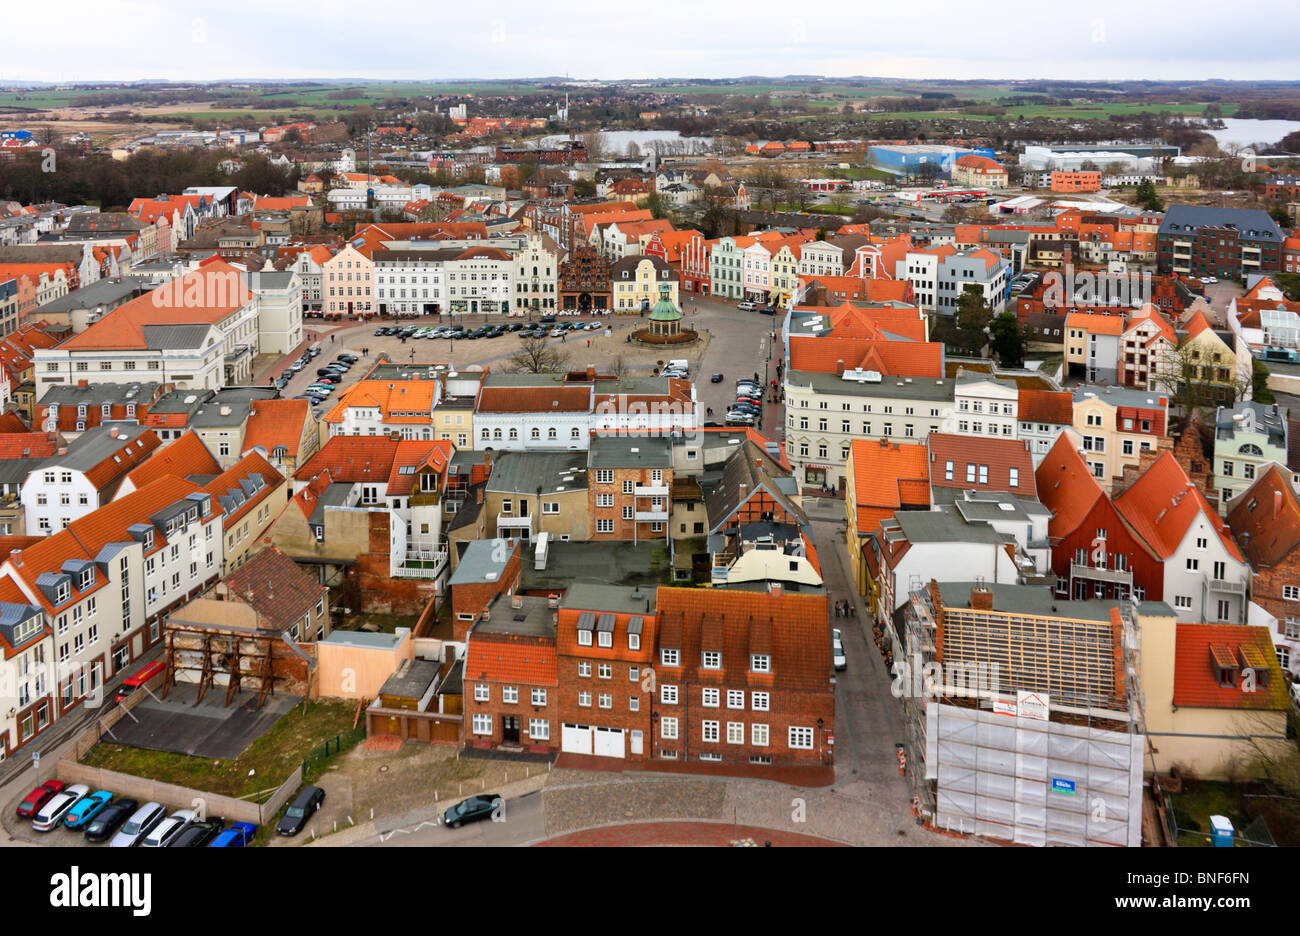 Aerial View over Wismar, Germany - Stock Image